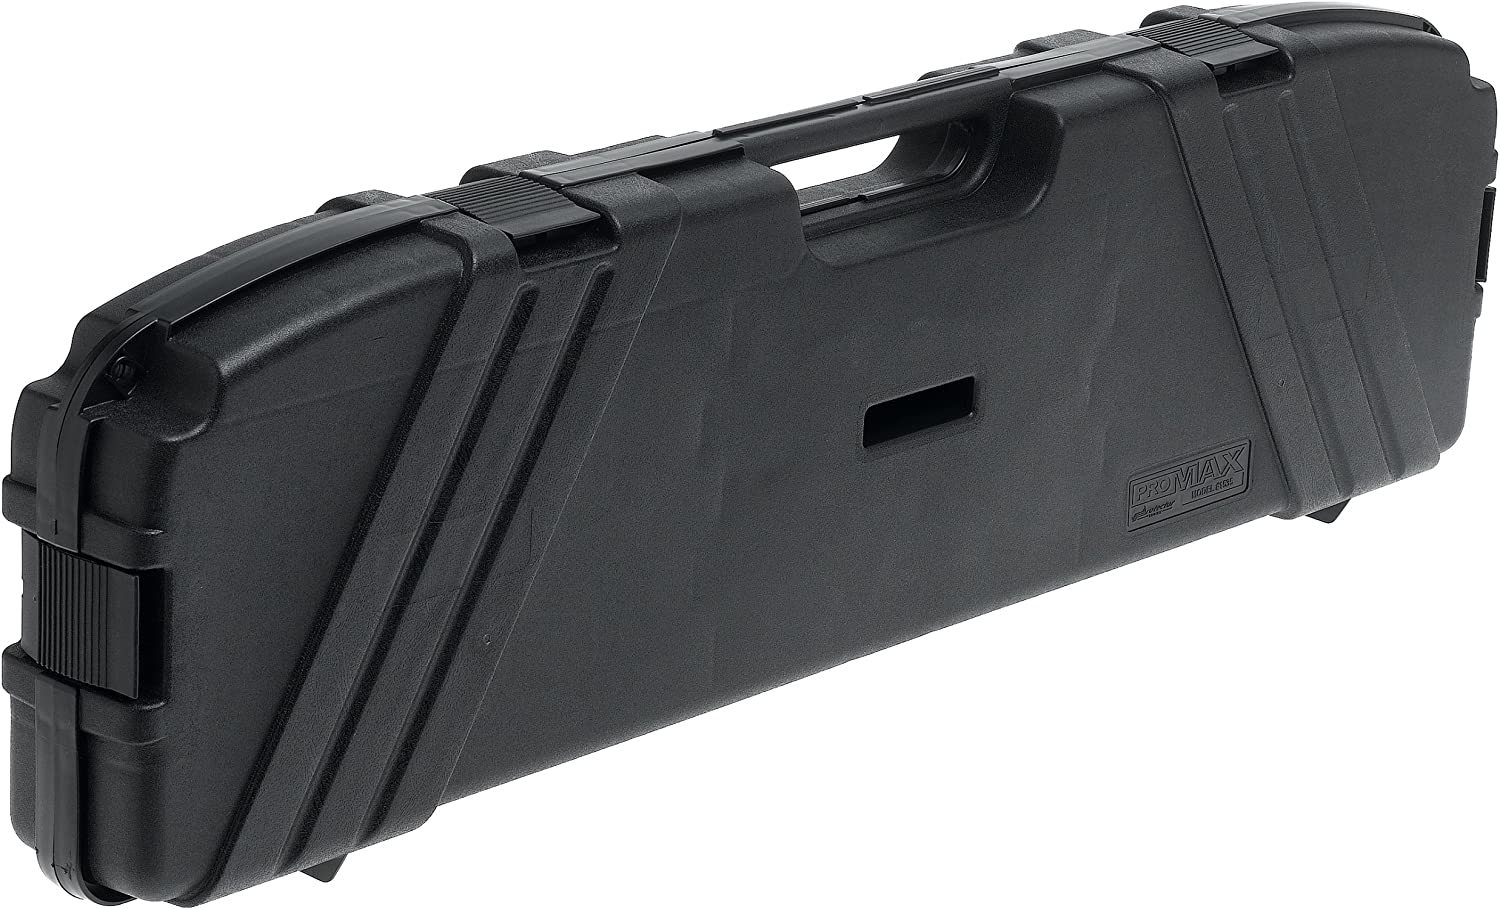 B000P3YSO6 Plano Pillared Take Down Gun Case, Black (1535-00) 915Ppav1tBS